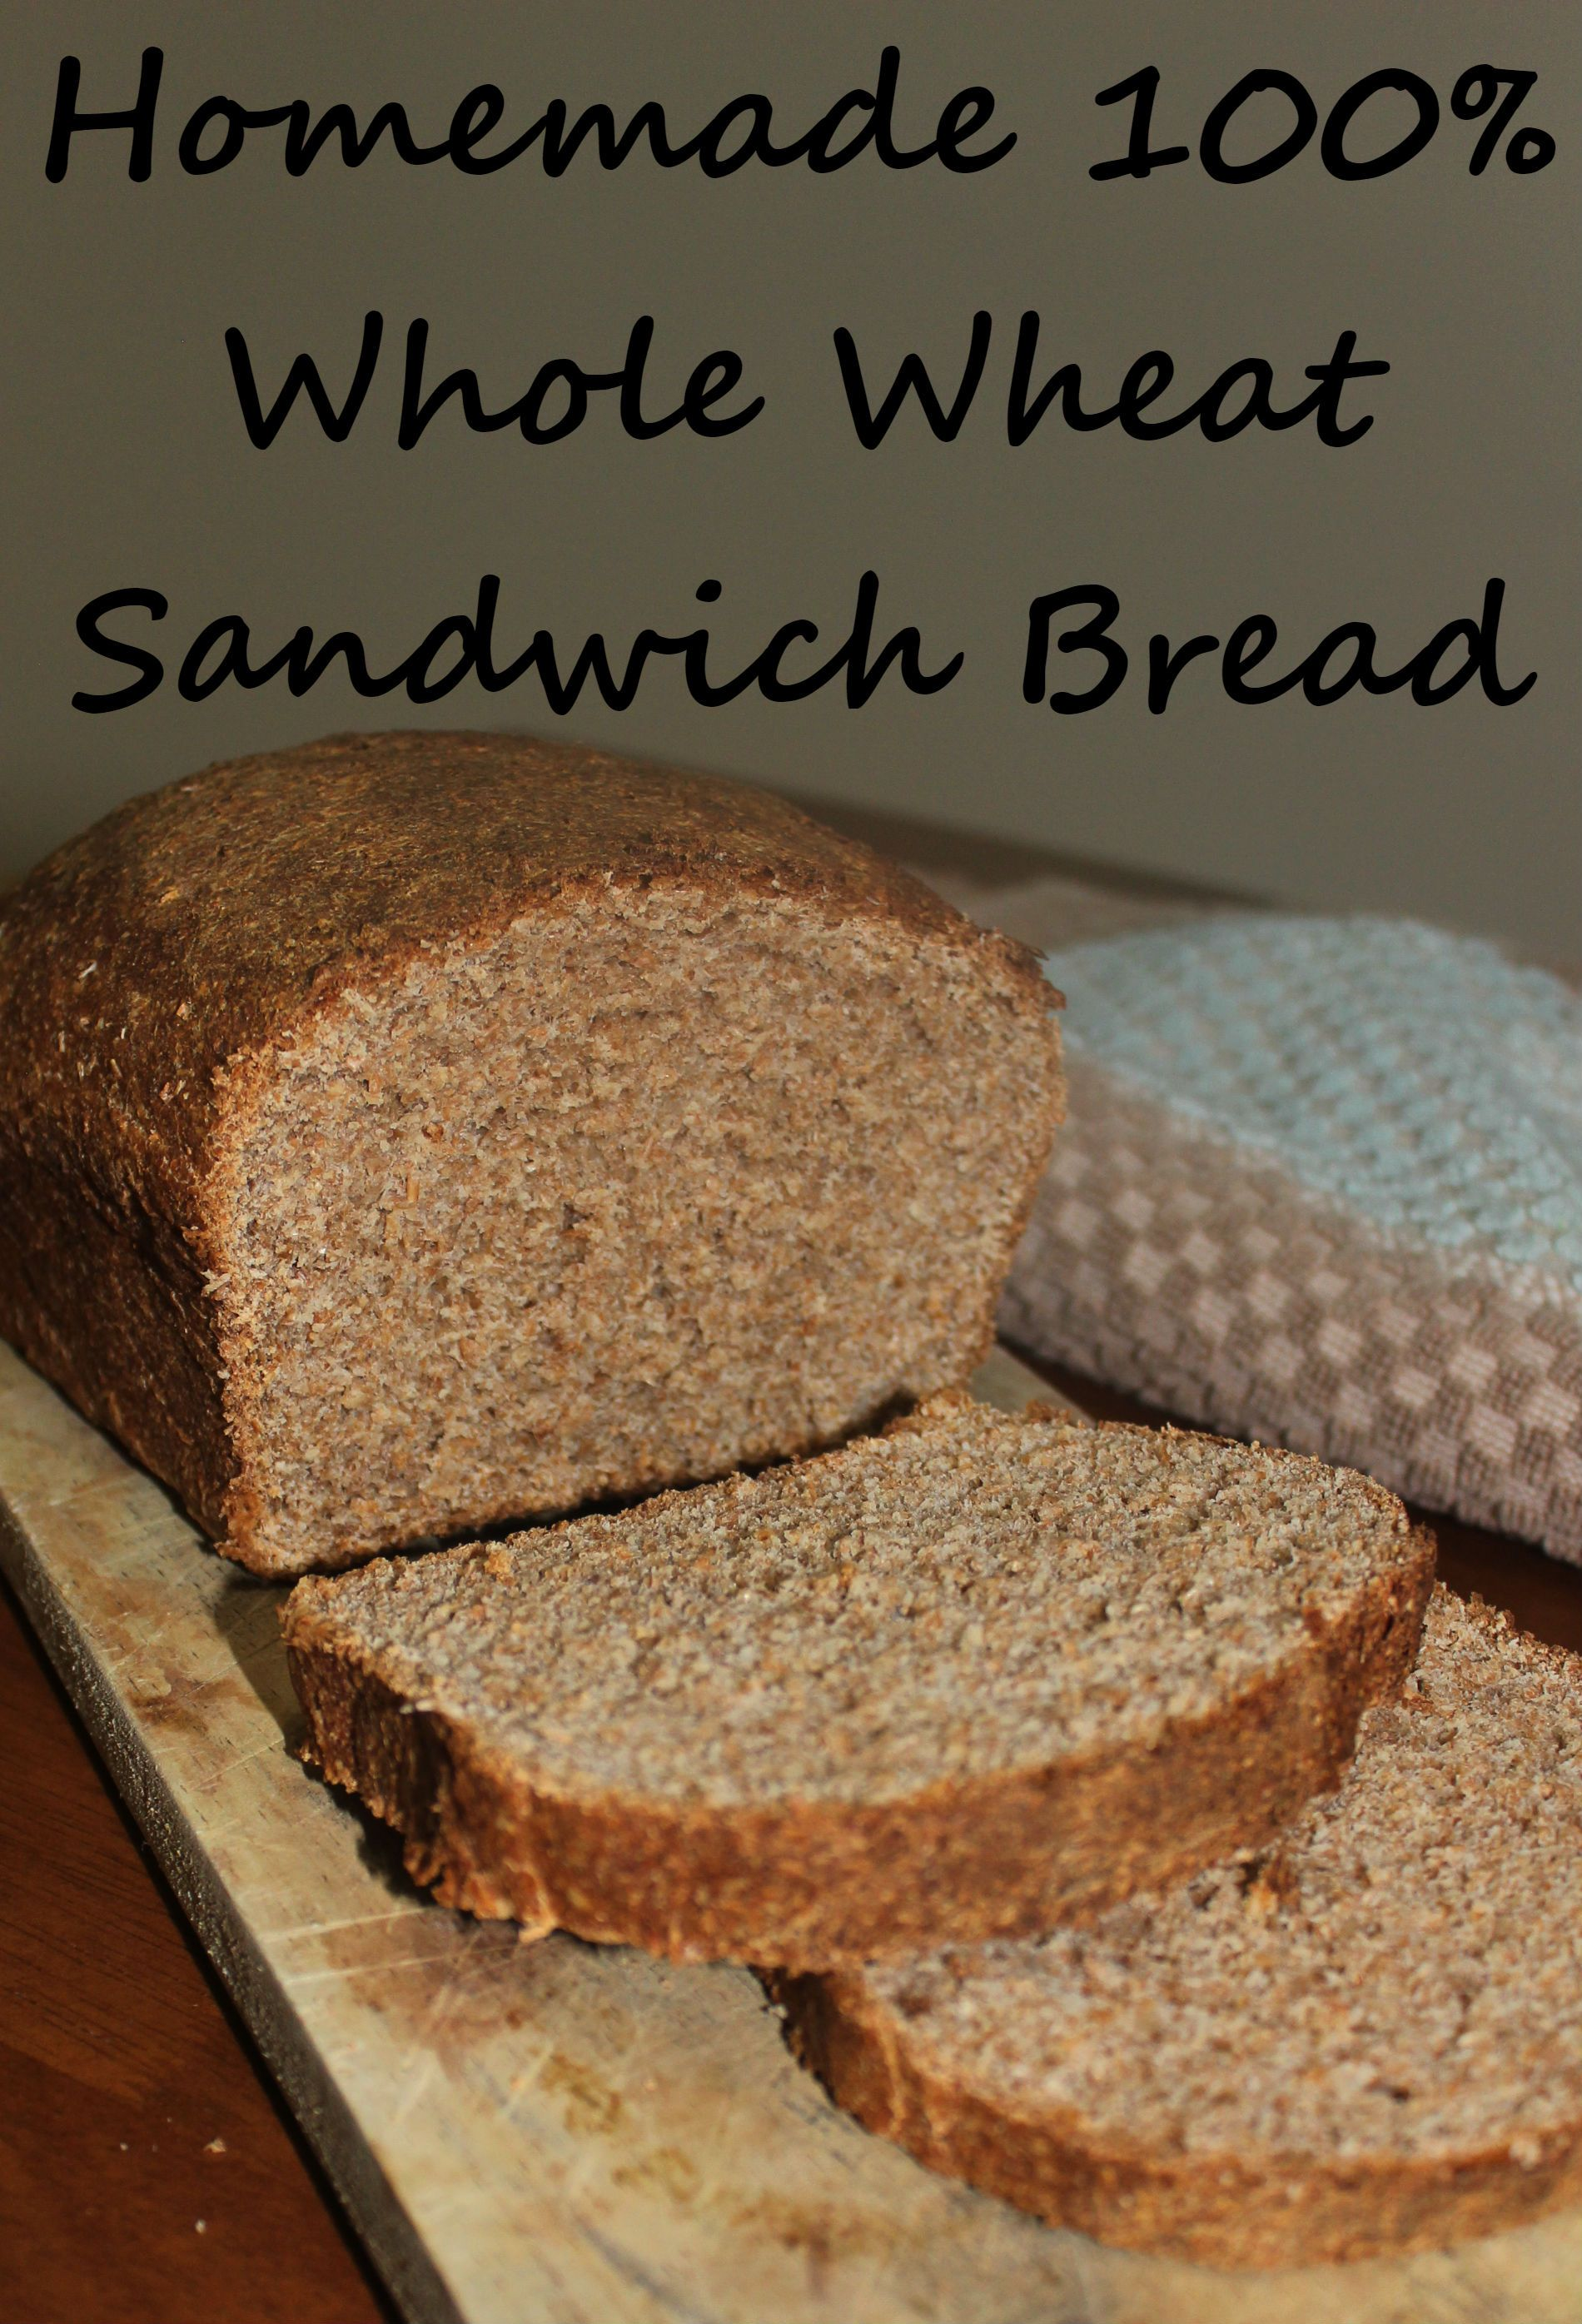 Easy homemade sandwich bread made with 100% whole wheat ...